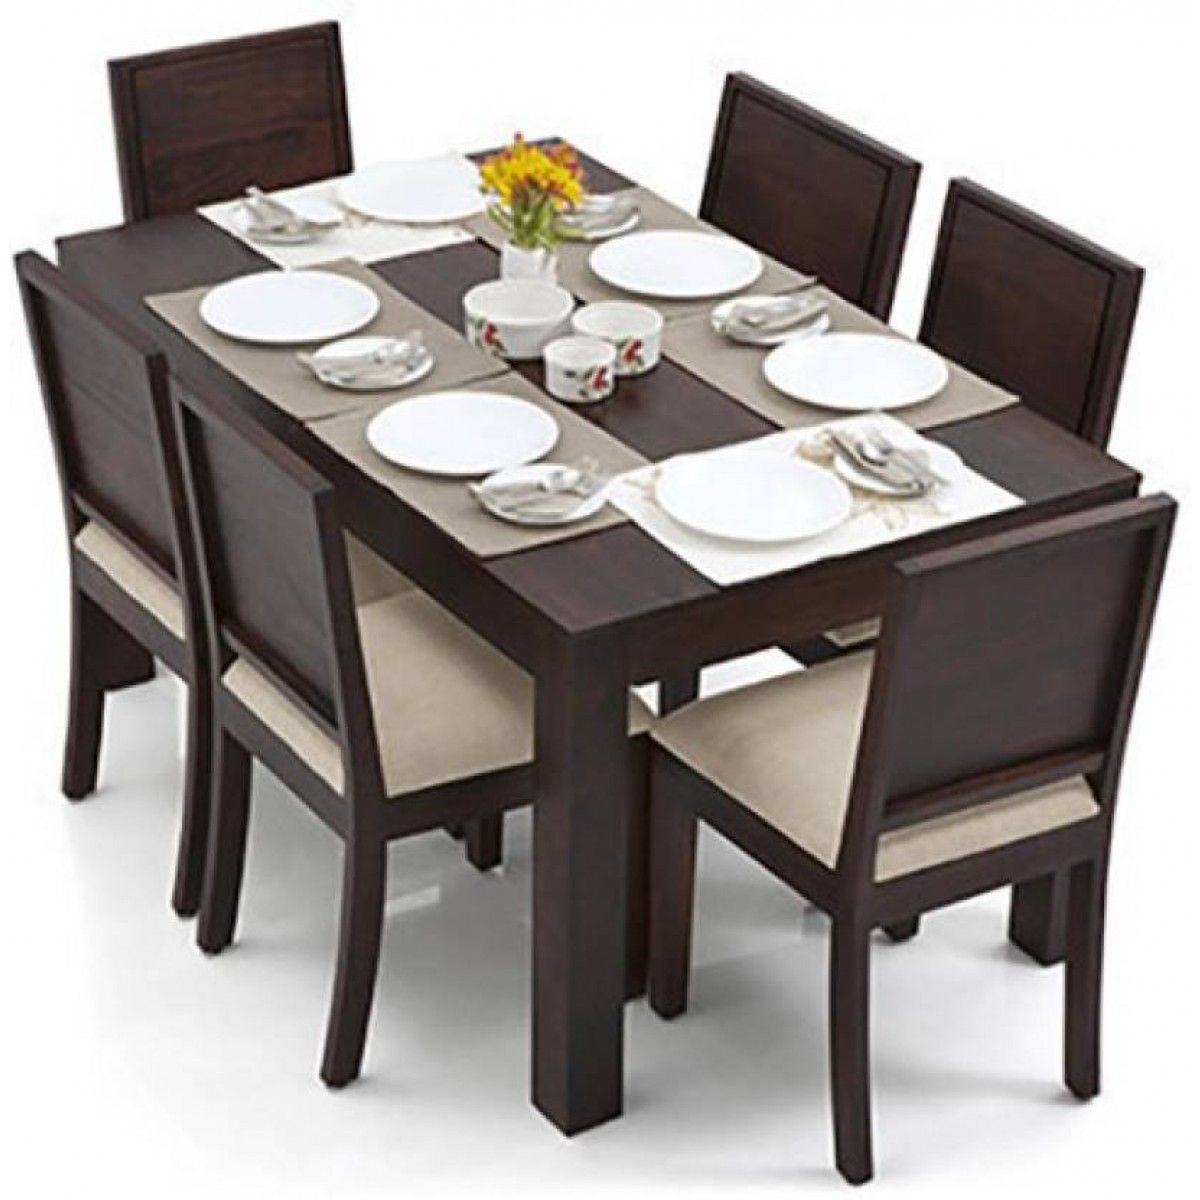 Tips For Buying The Perfect Dining Sets For Your Home